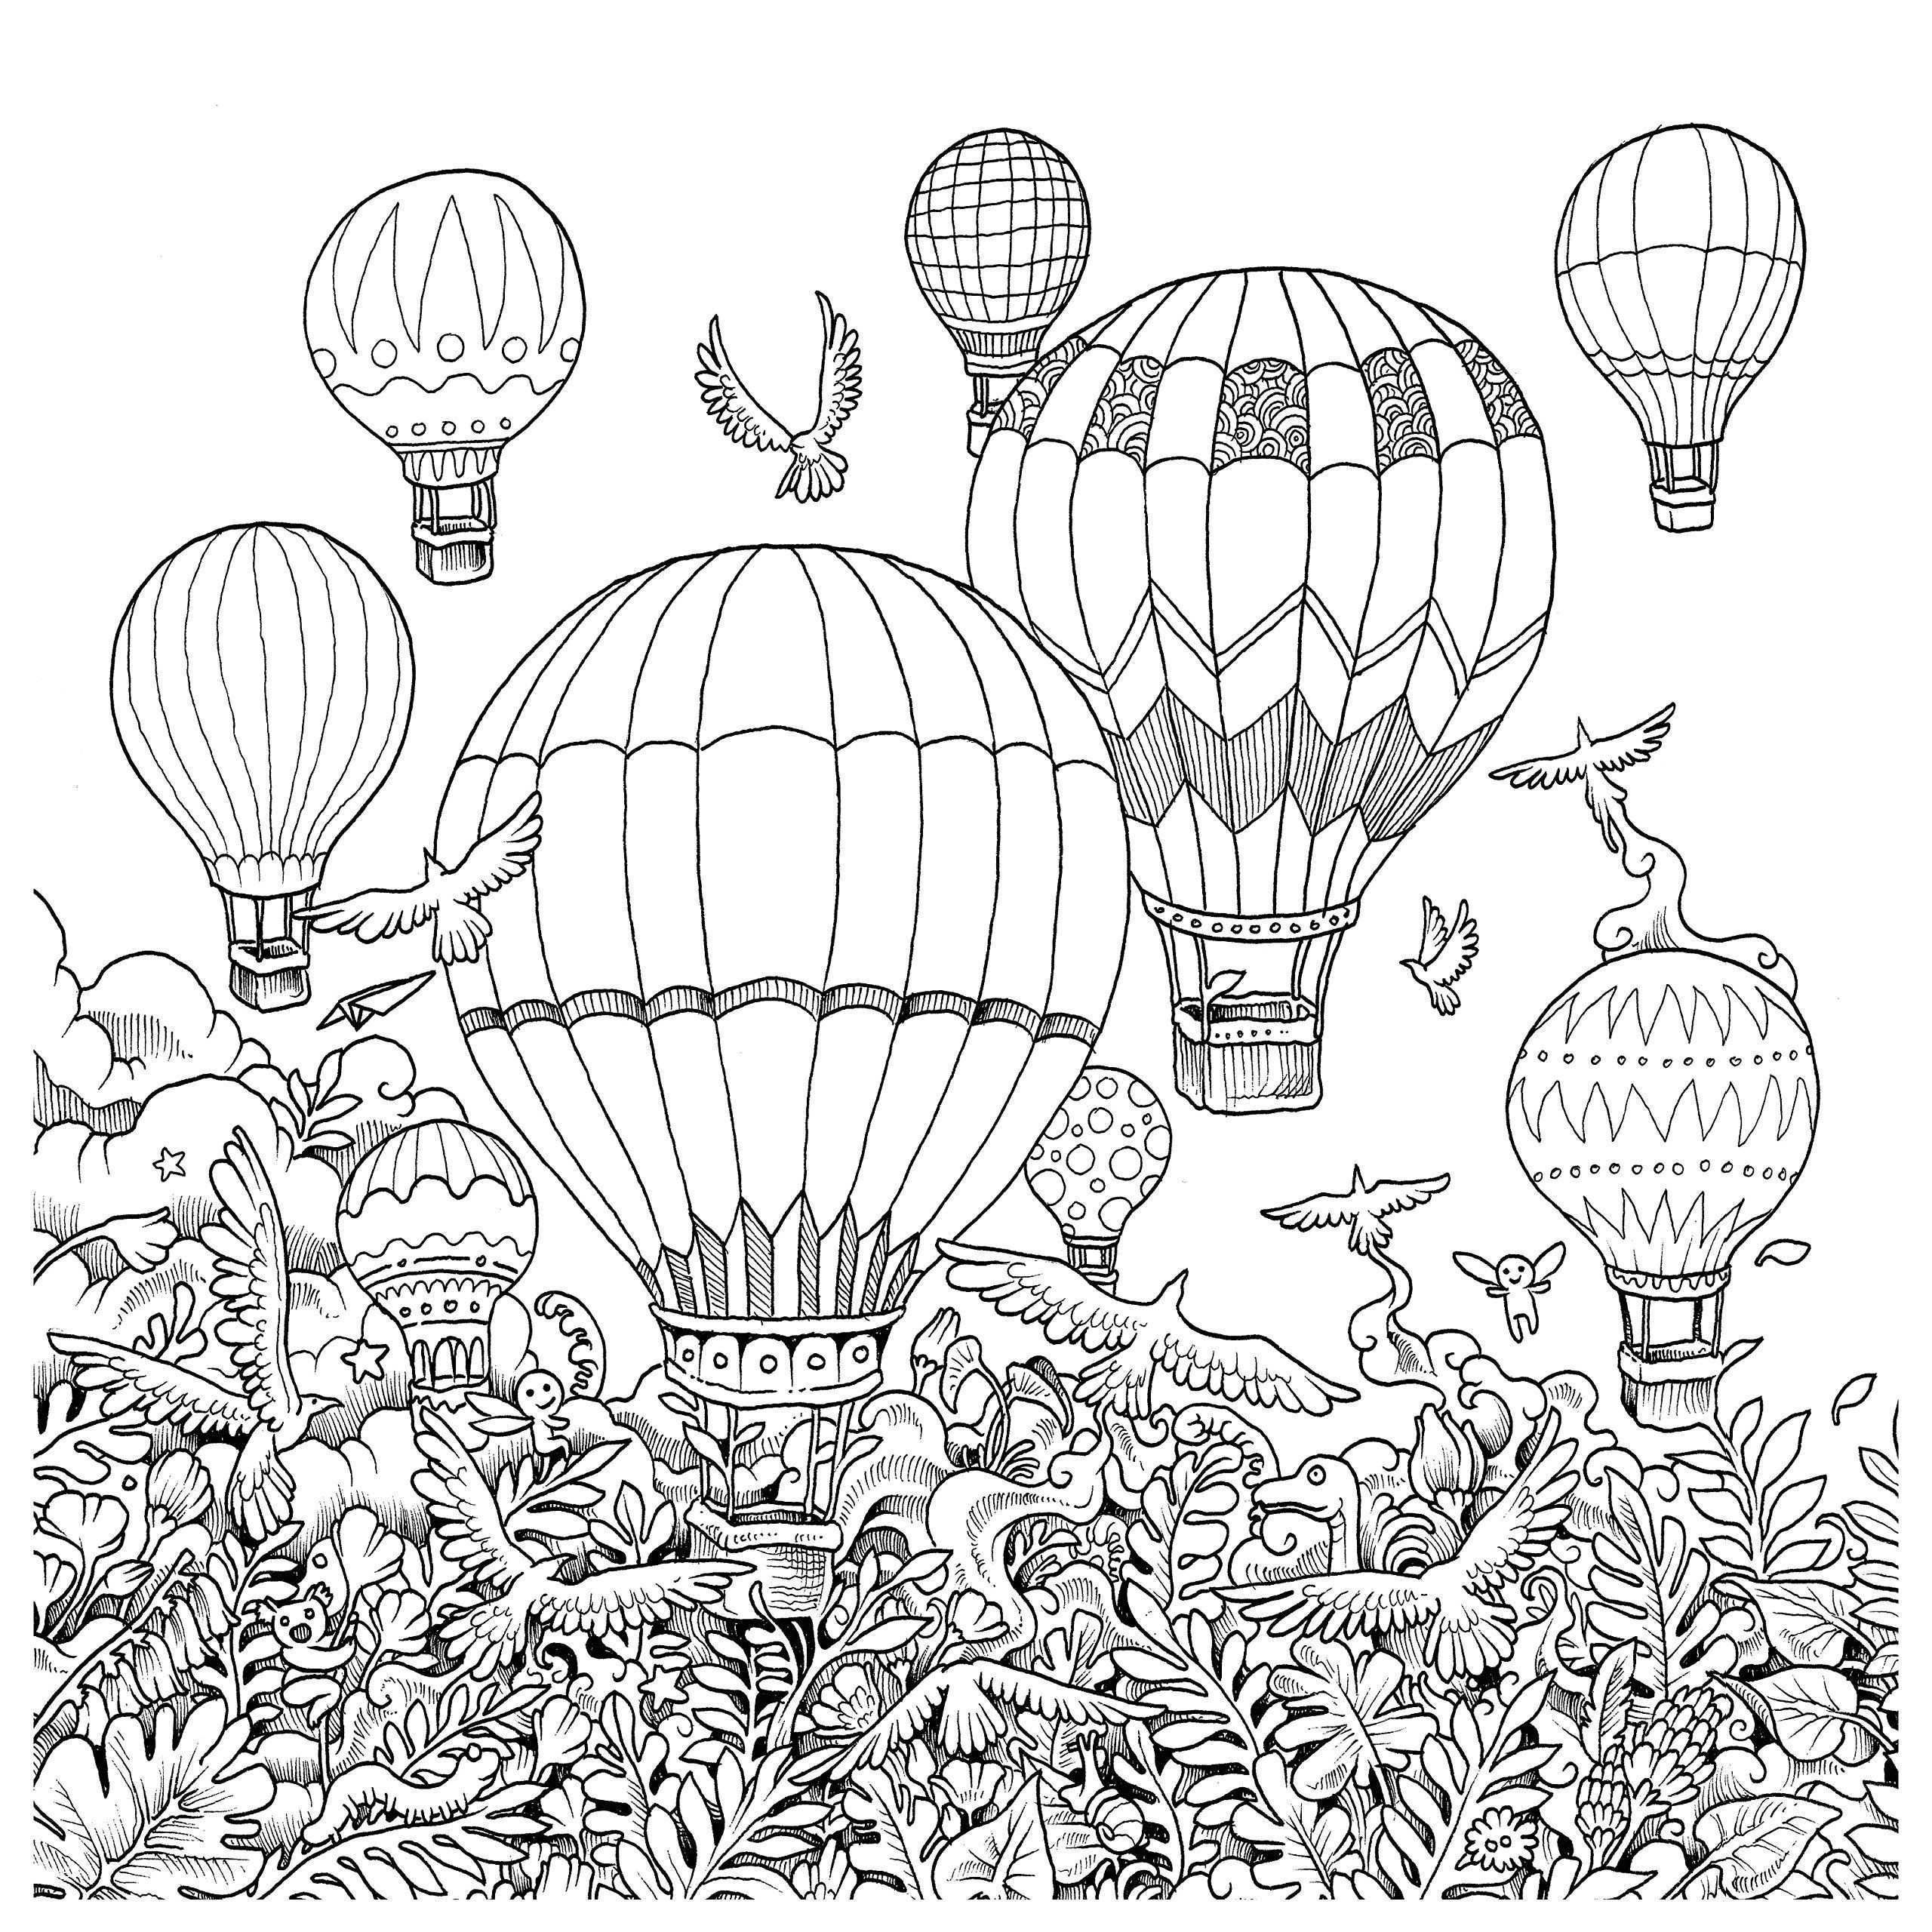 Google Image Result For Https Osvehprint Com Wp Content Uploads 2018 11 Mythomorphia Colored Pages New Imagimorphi Coloring Pages Coloring Books Book Drawing